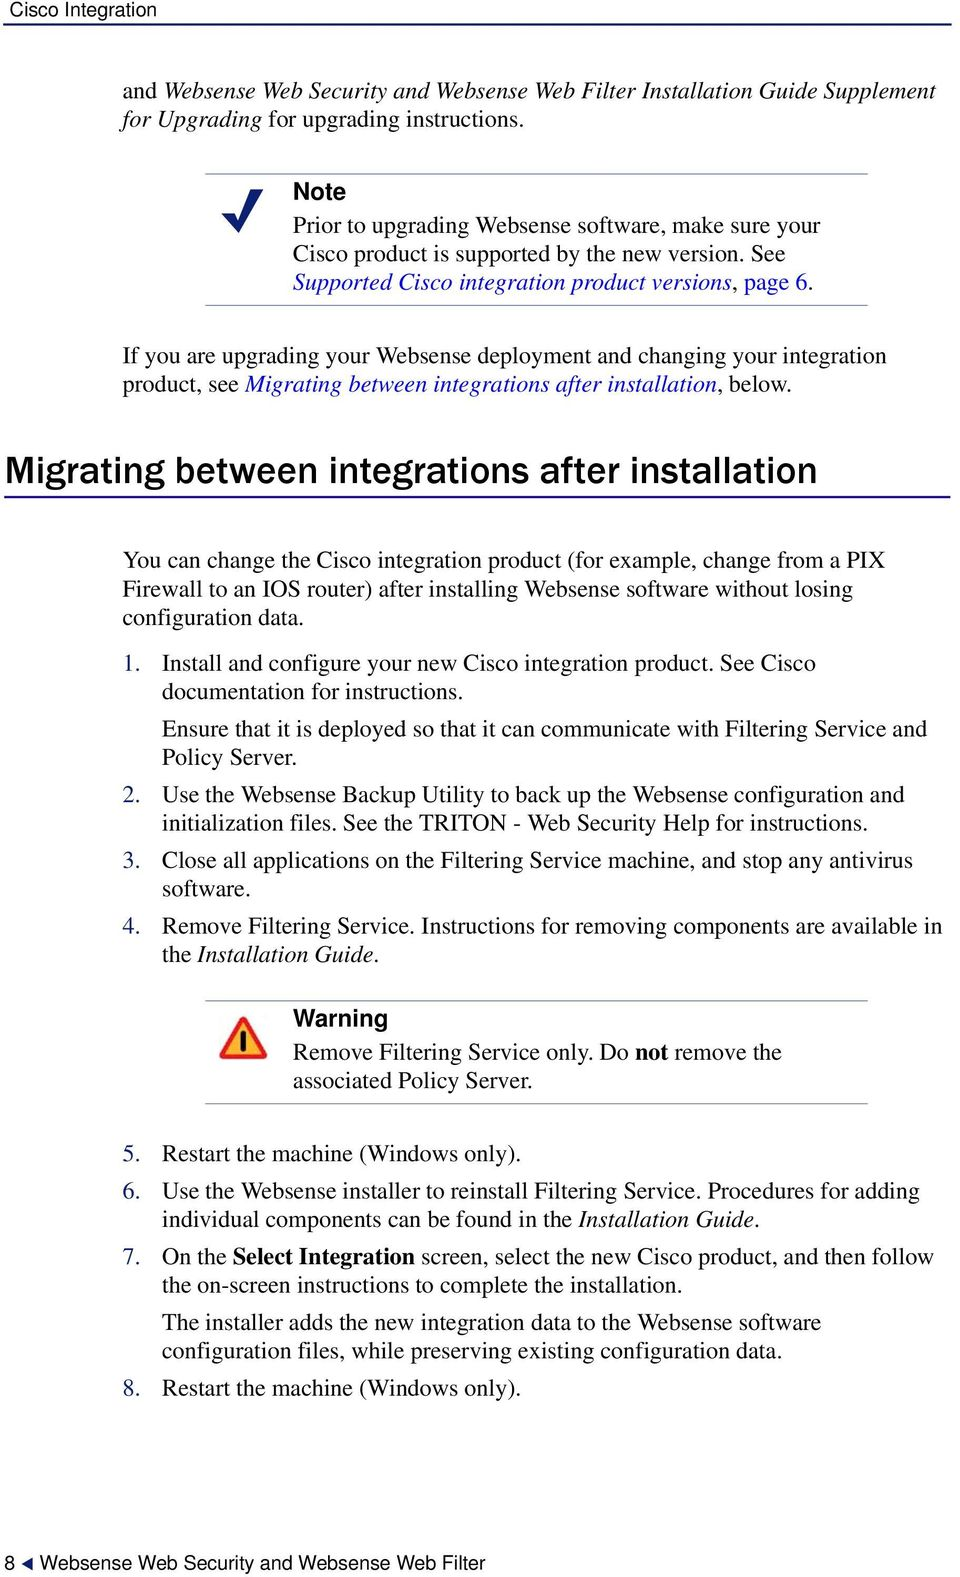 If you are upgrading your Websense deployment and changing your integration product, see Migrating between integrations after installation, below.